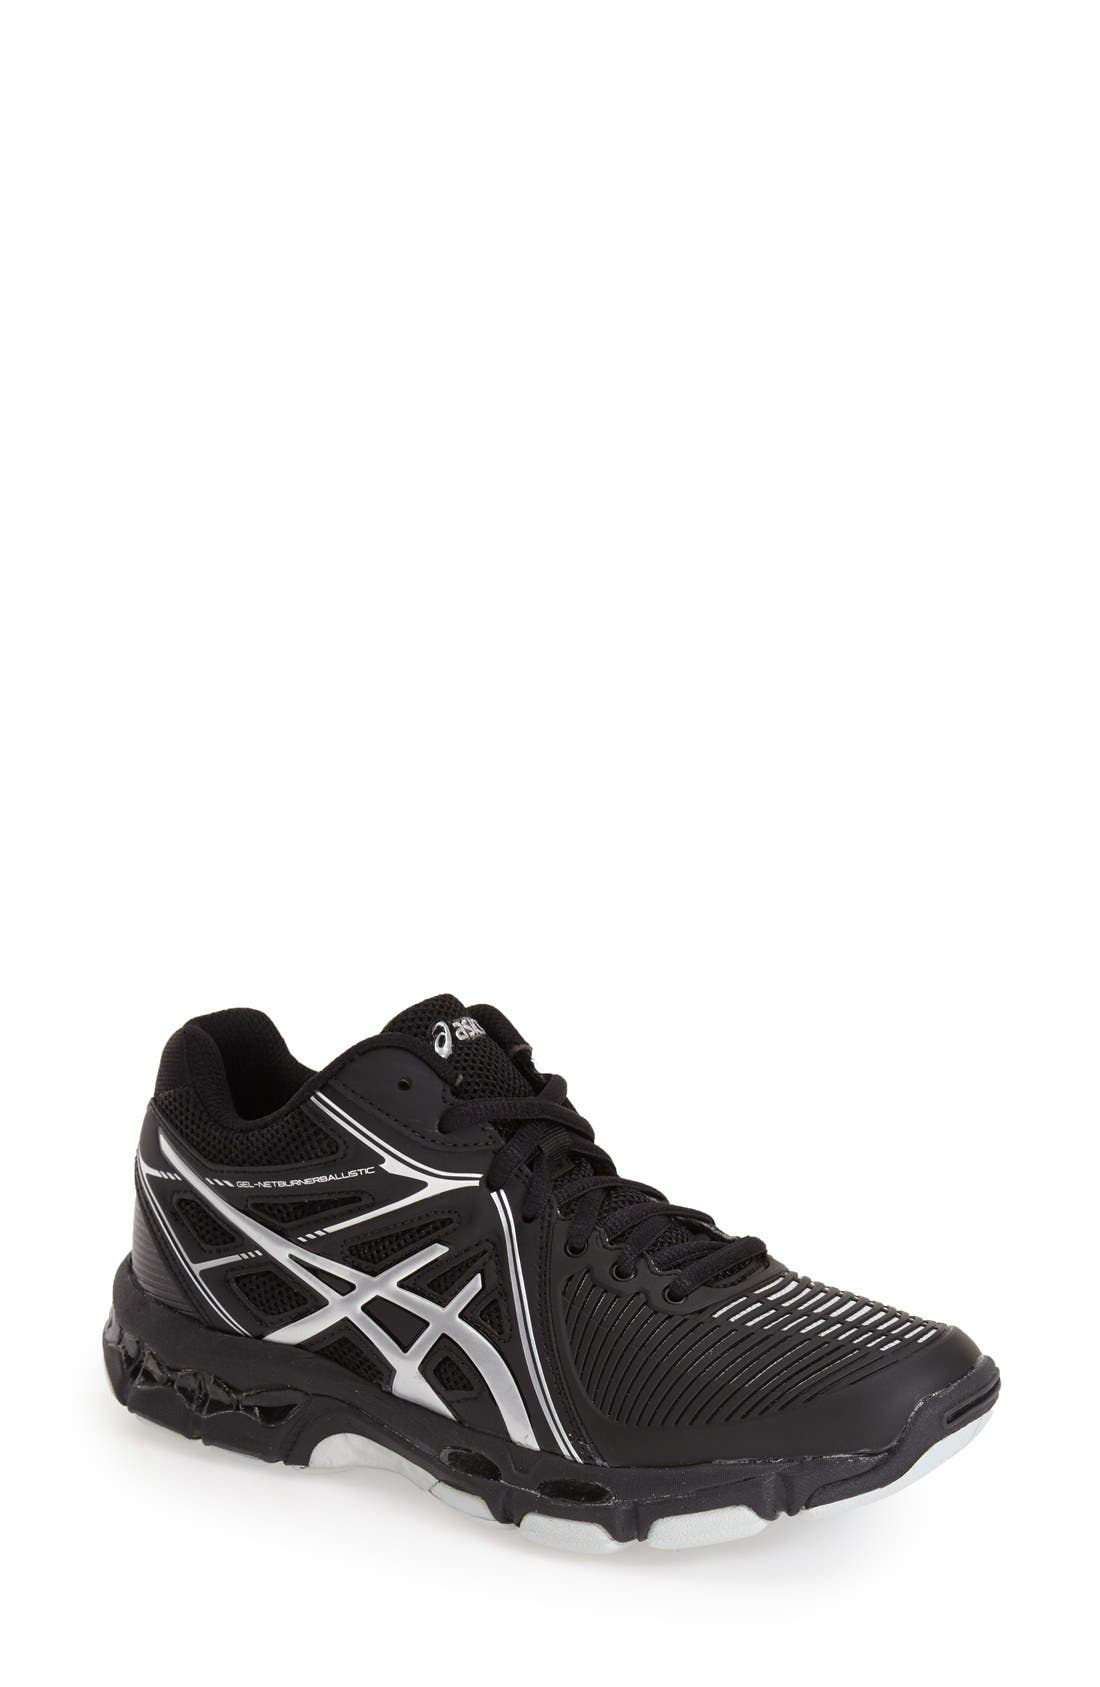 Main Image - ASICS® 'GEL-Netburner' Mid Volleyball Shoe (Women)